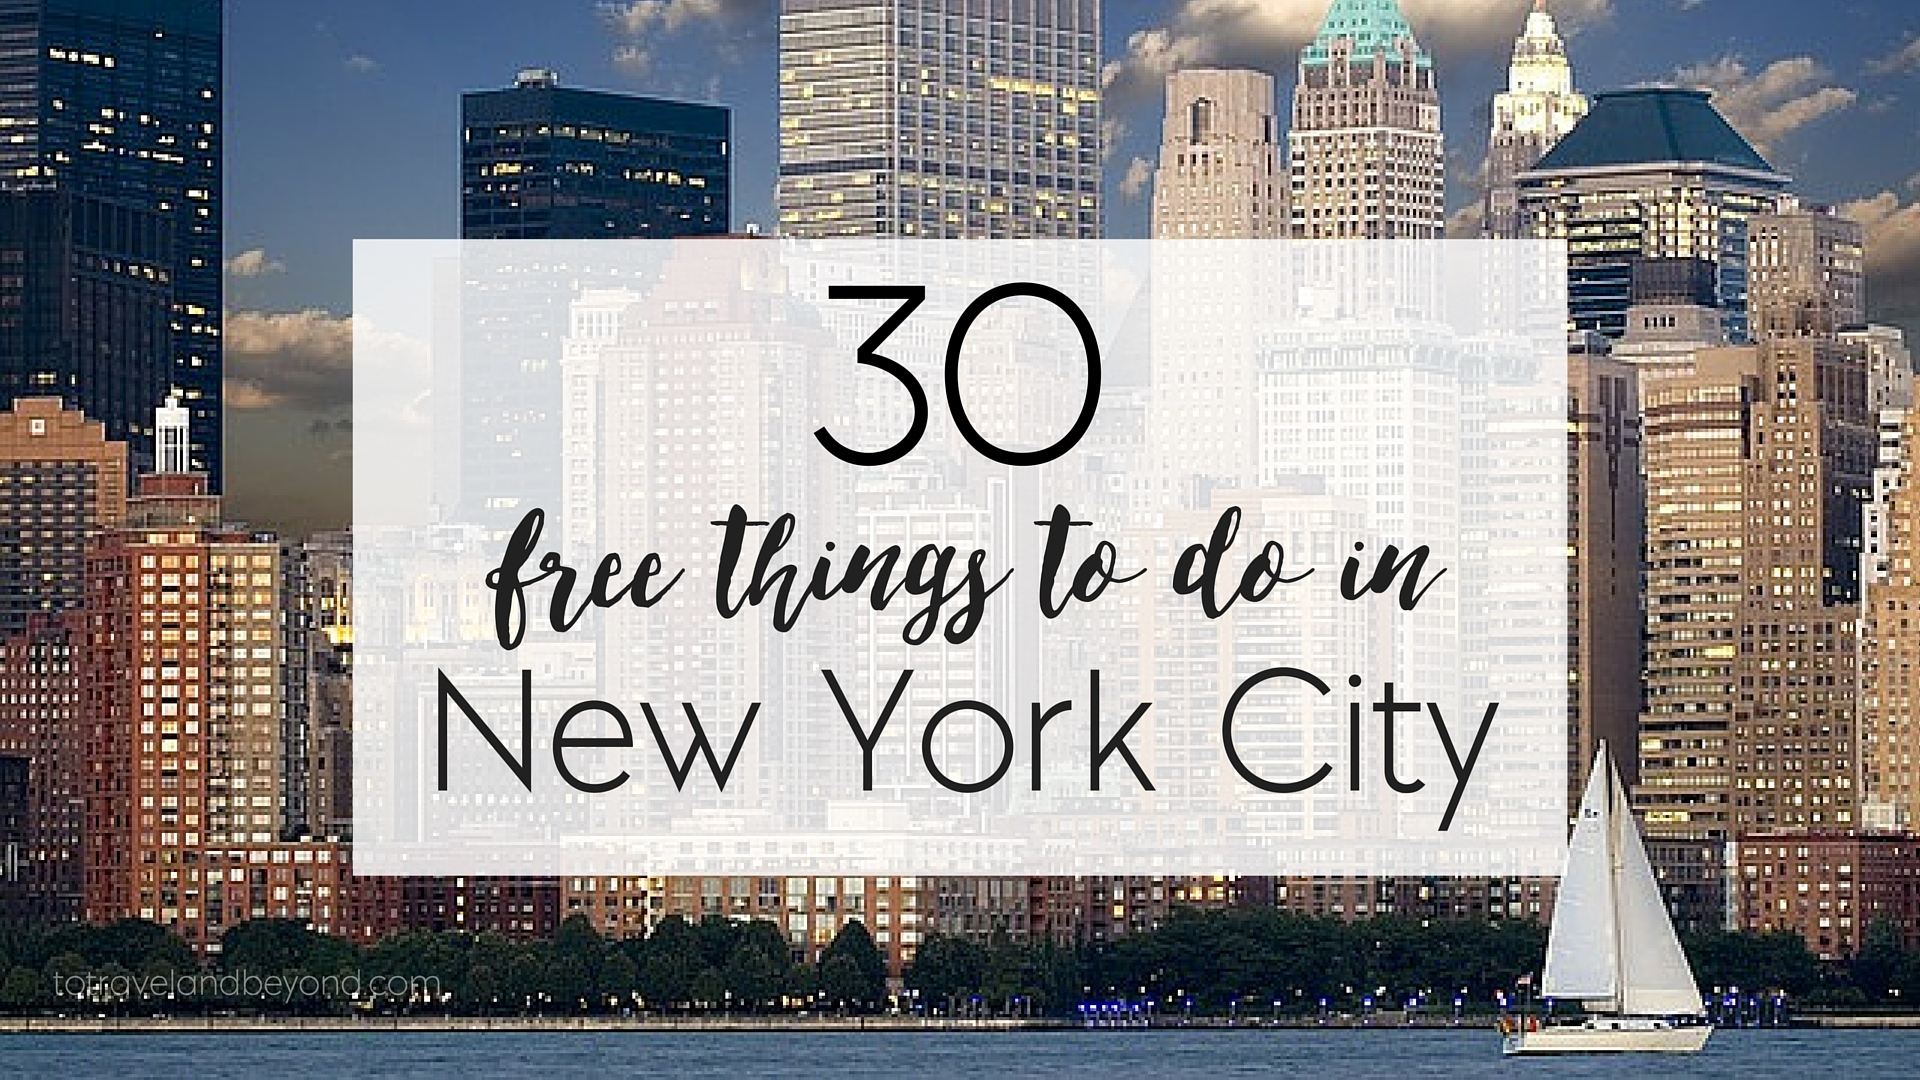 Free things to do in nyc on new years 28 images free for Attractions in nyc for couples